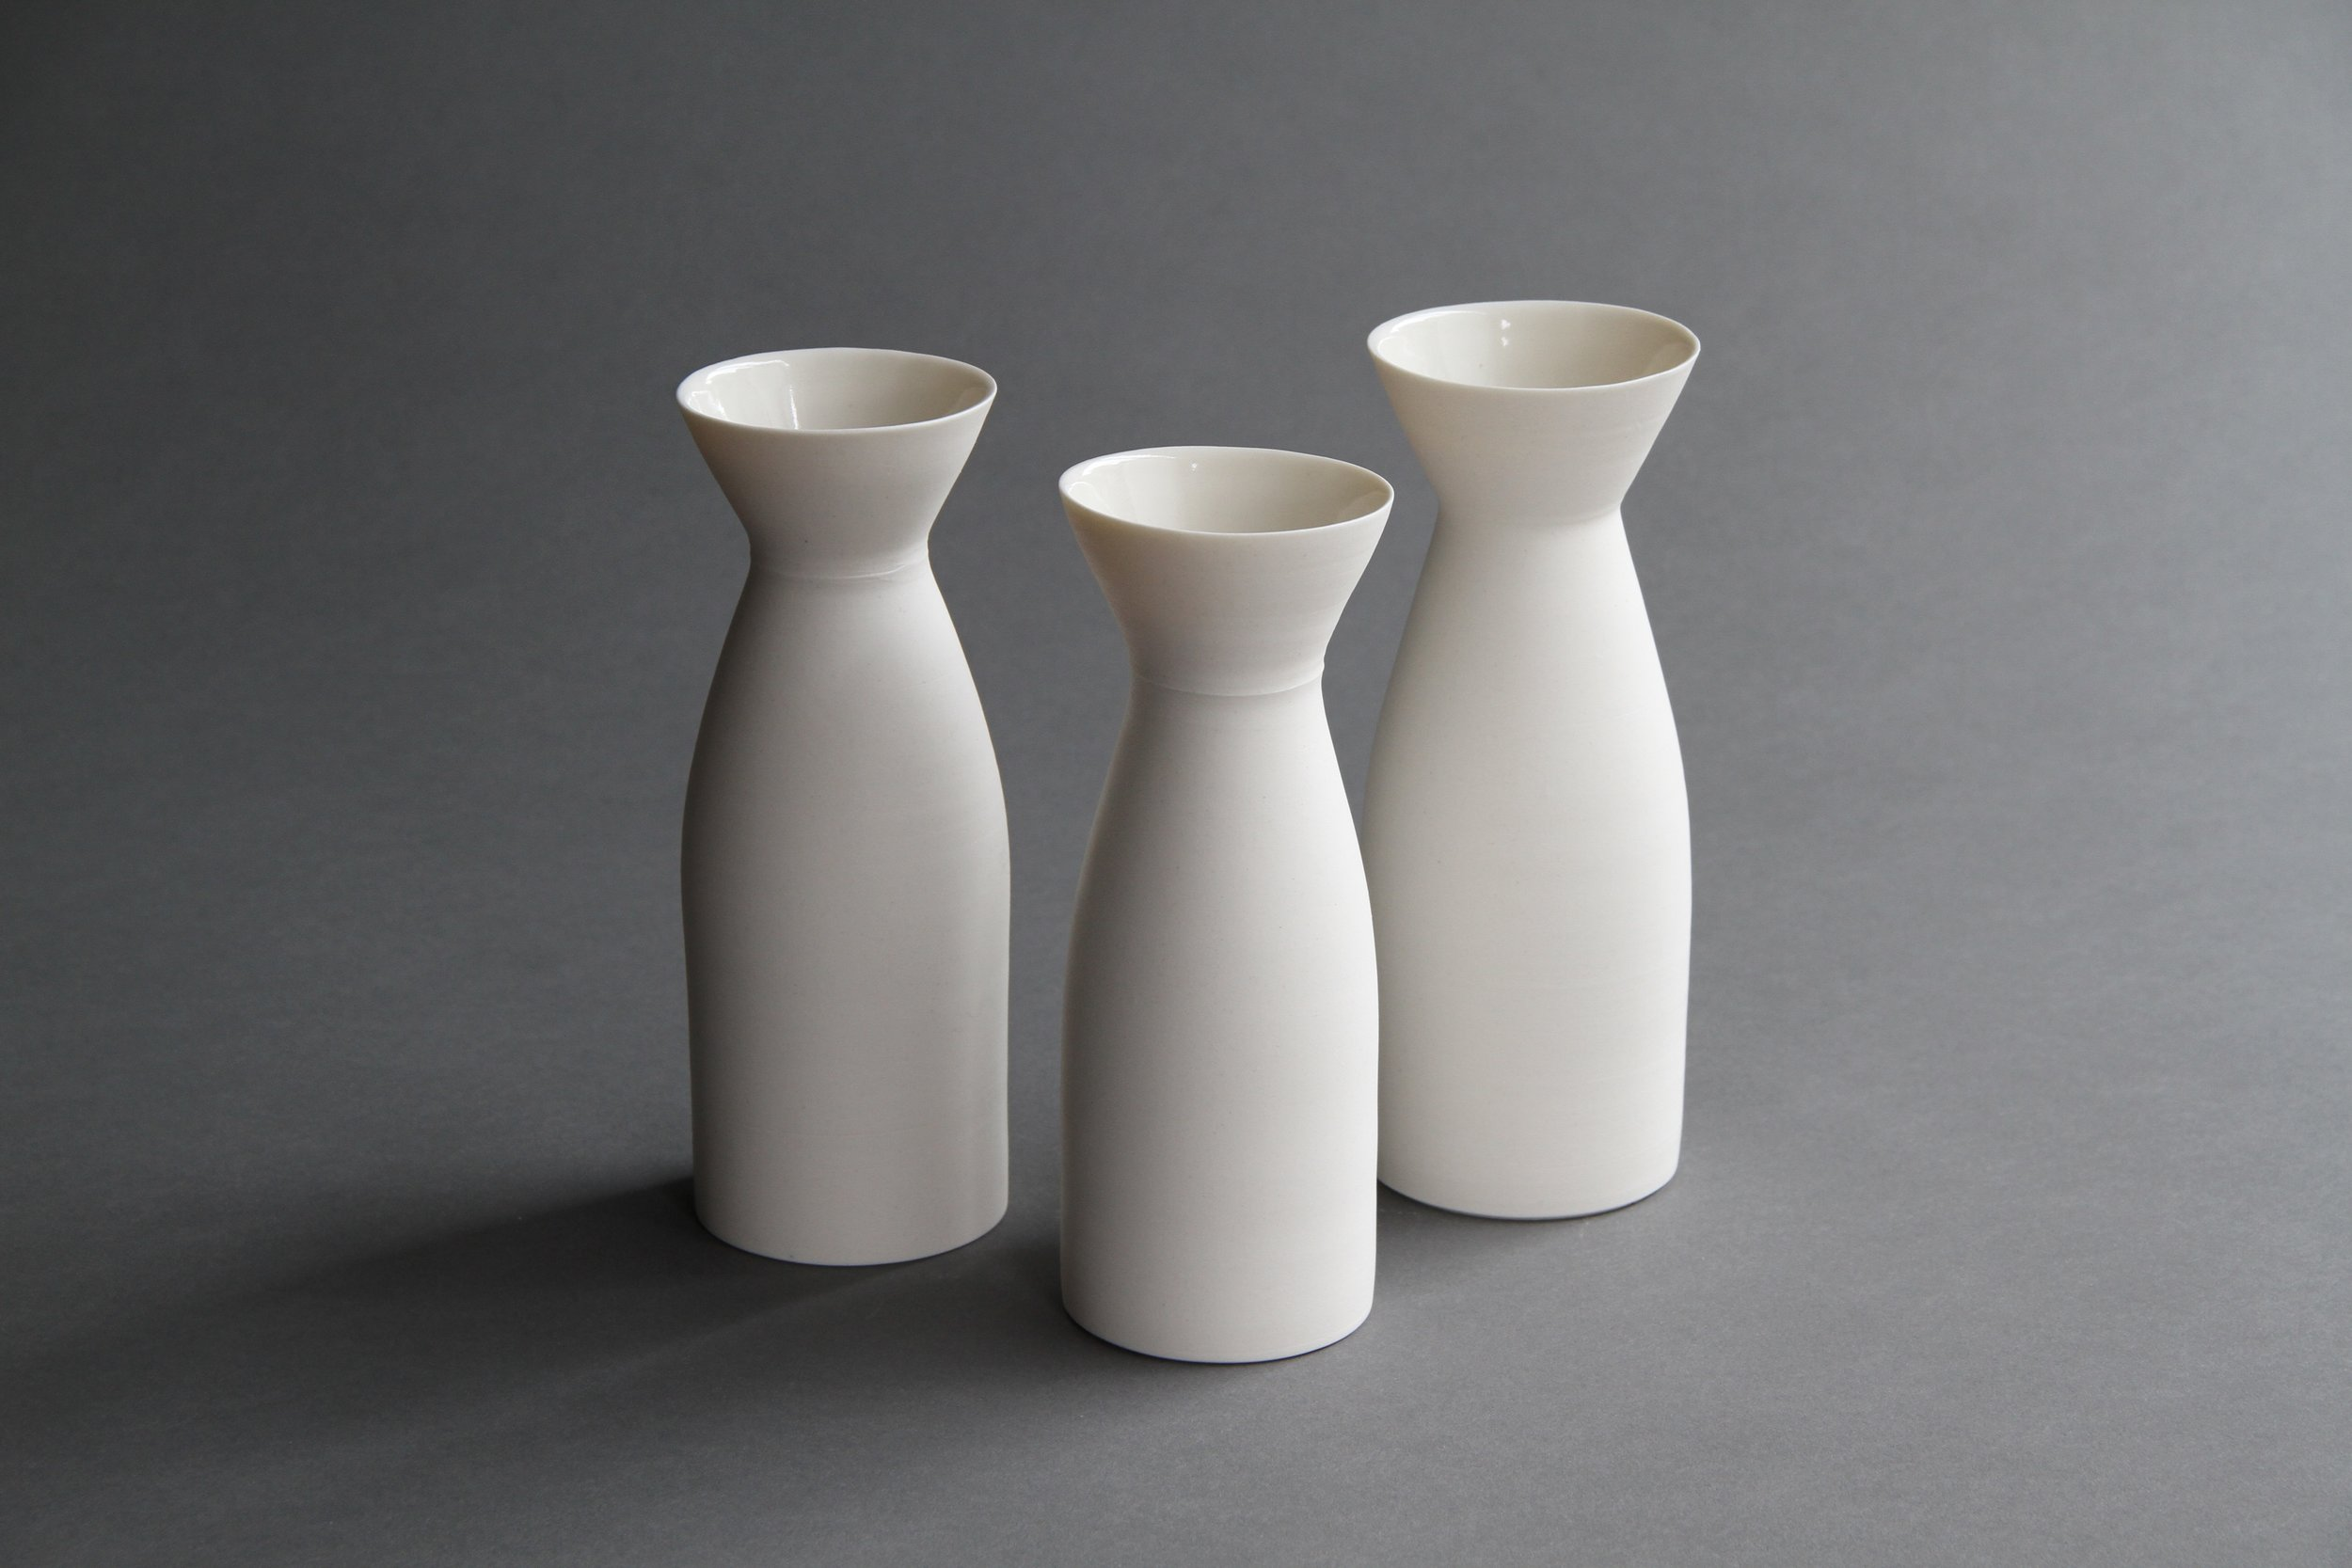 Ceramic tableware pourers set by Lilith Rockett, Portland, Oregon